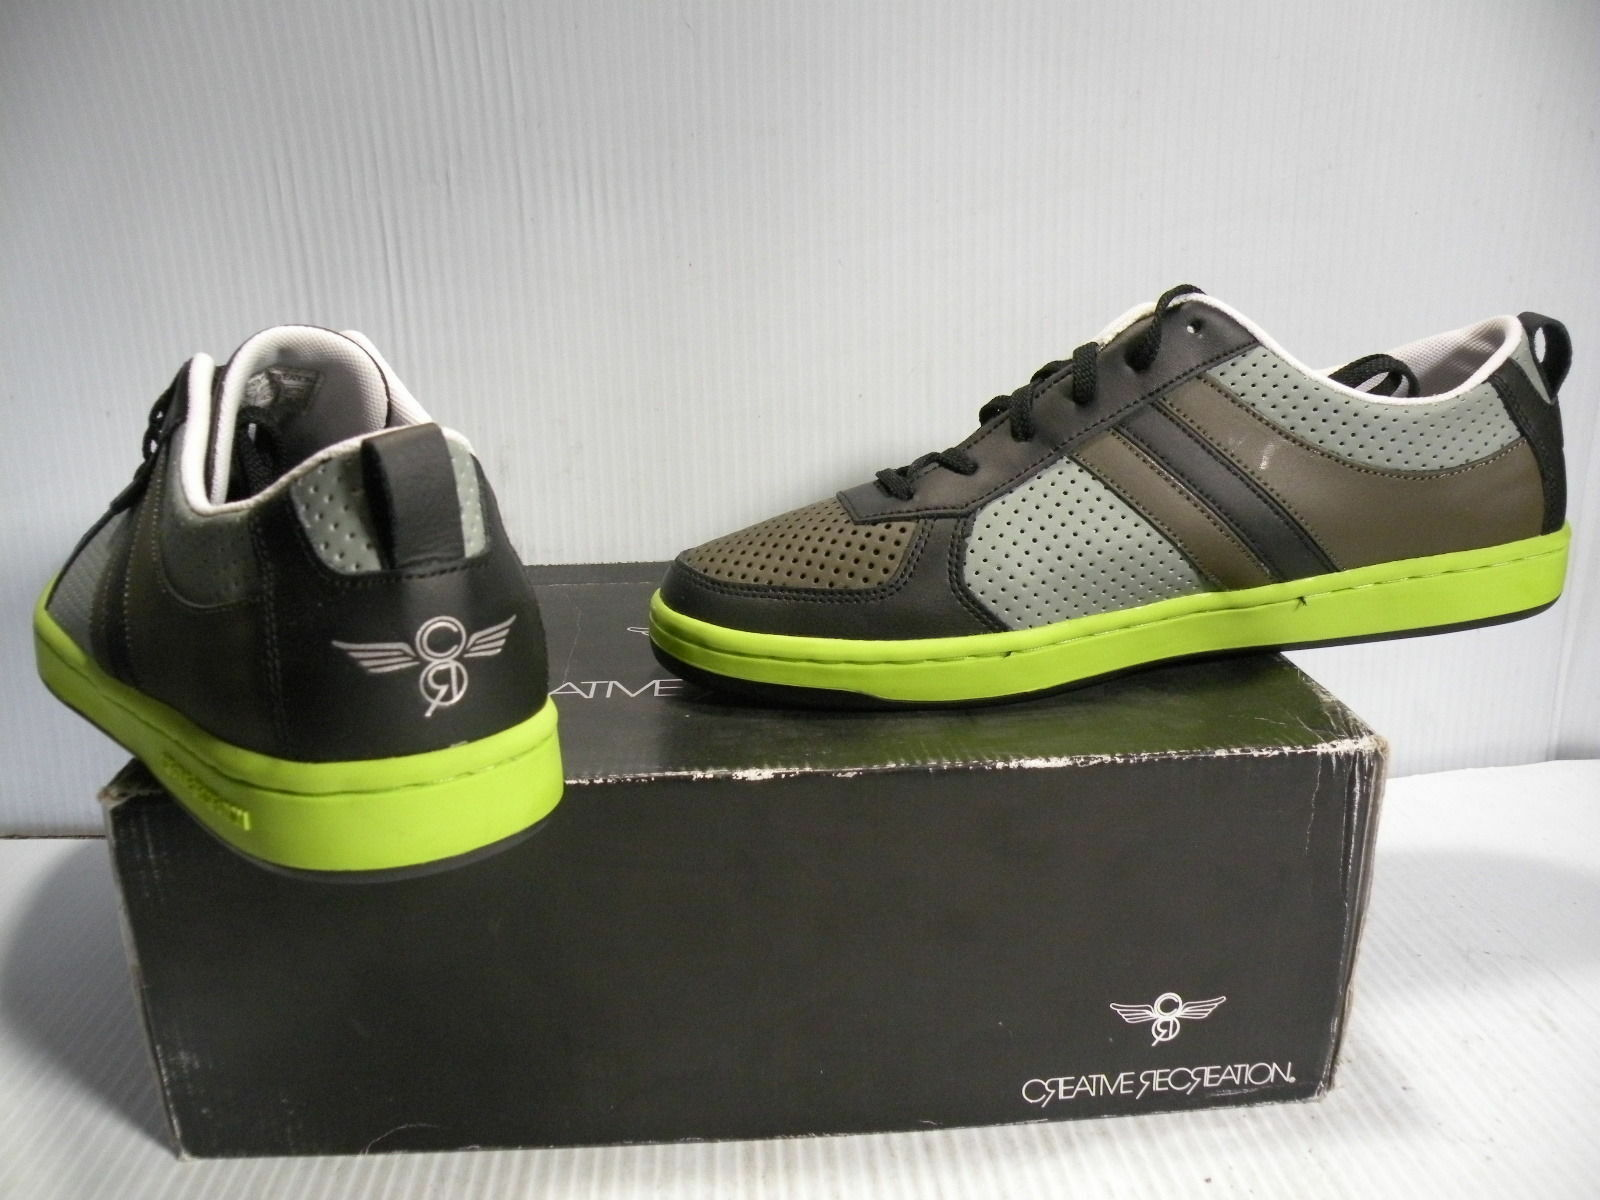 Creative Recreation dicoco  Shoes Shoes Shoes Mens BLACK/SMOKE/GREEN CR39LO38 size 13 new 9ed08a